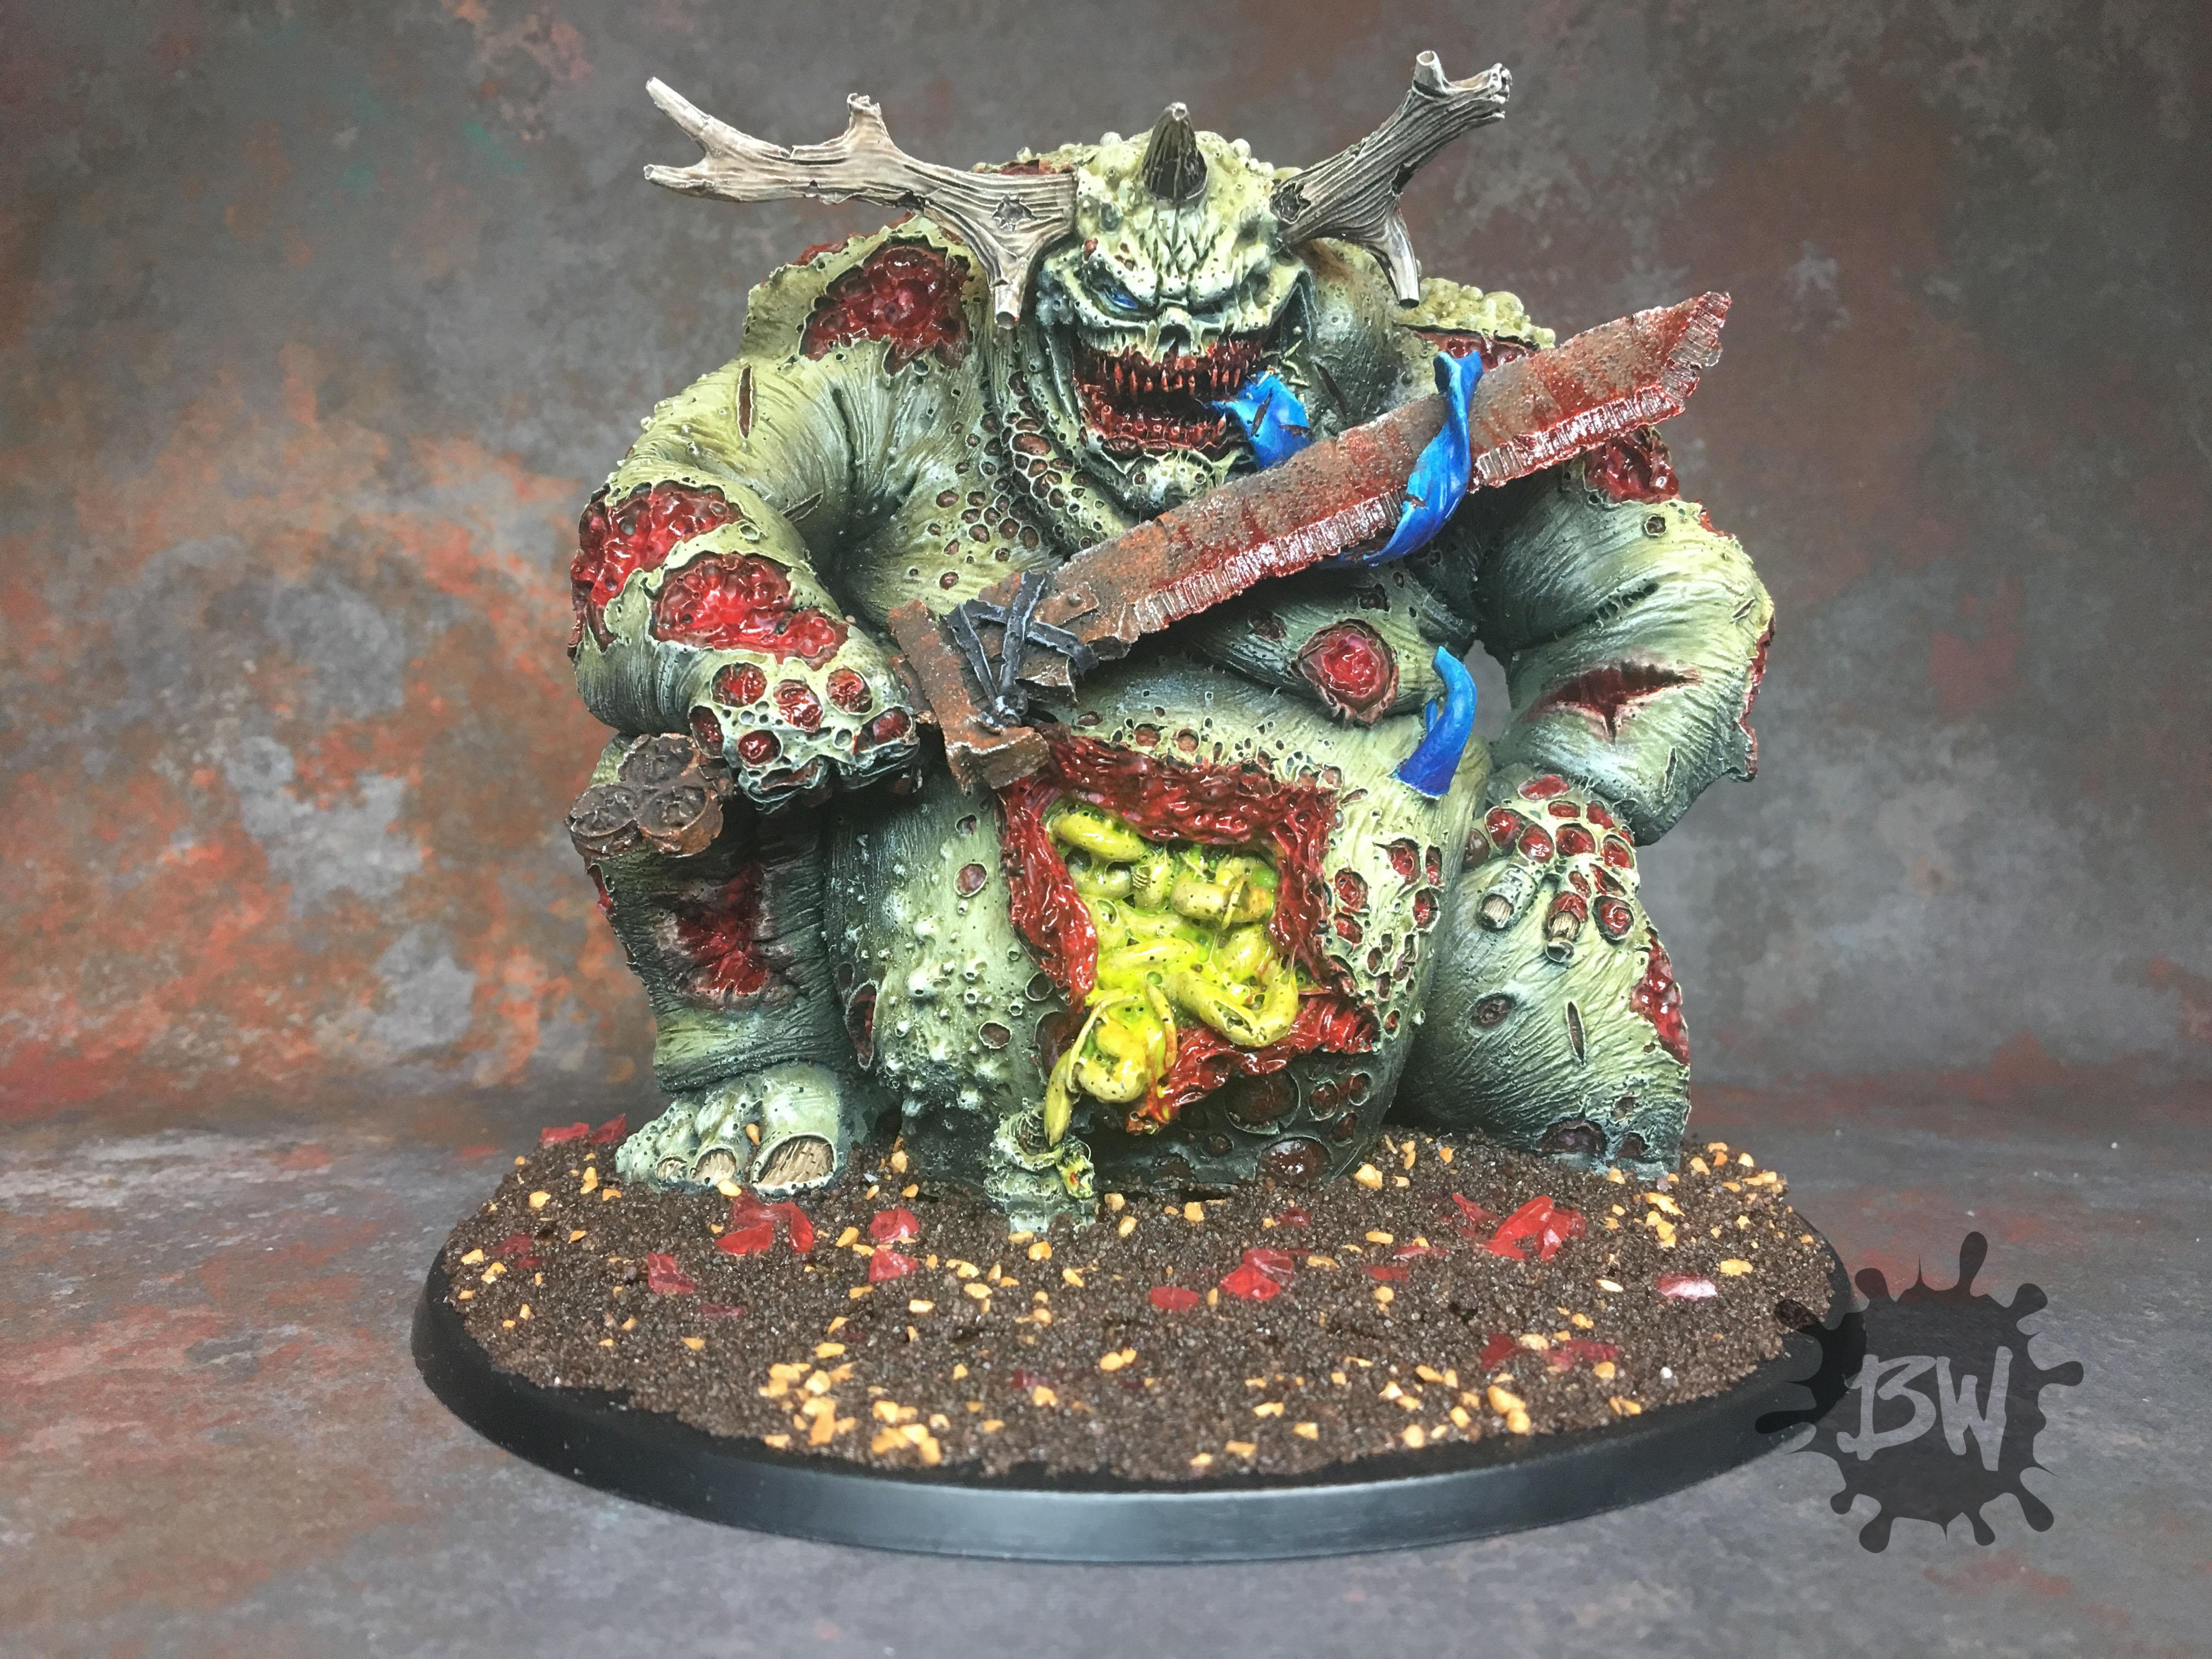 Age Of Sigmar, Aos Chaos, Daemons, Exalted Greater Daemon Of Nurgle, Games Workshop, Guo, Nurgle, Warhammer 40,000